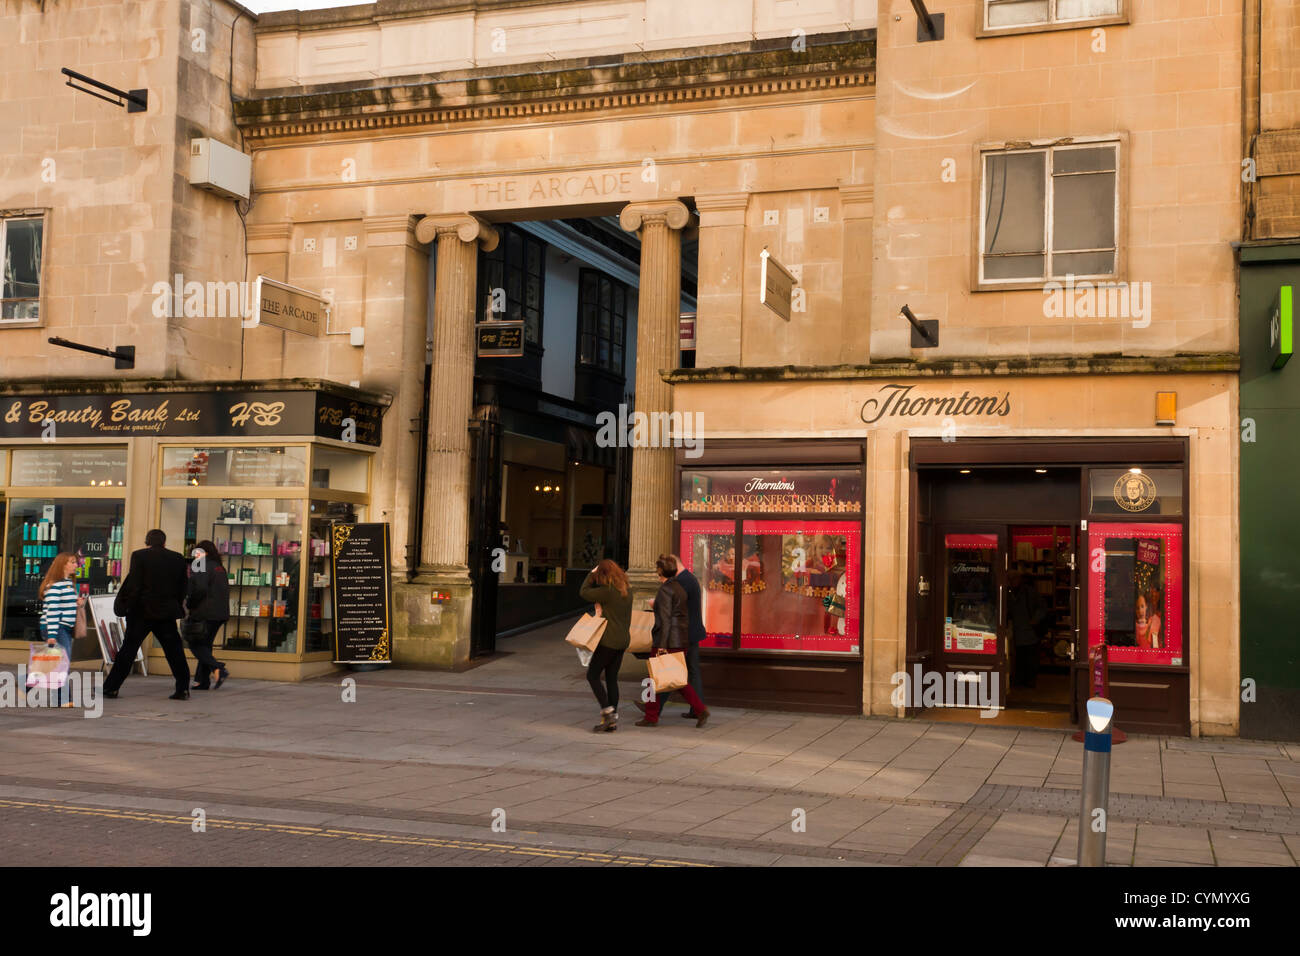 Entrance to The Arcade in Broadmead shopping precinct Bristol, UK. - Stock Image